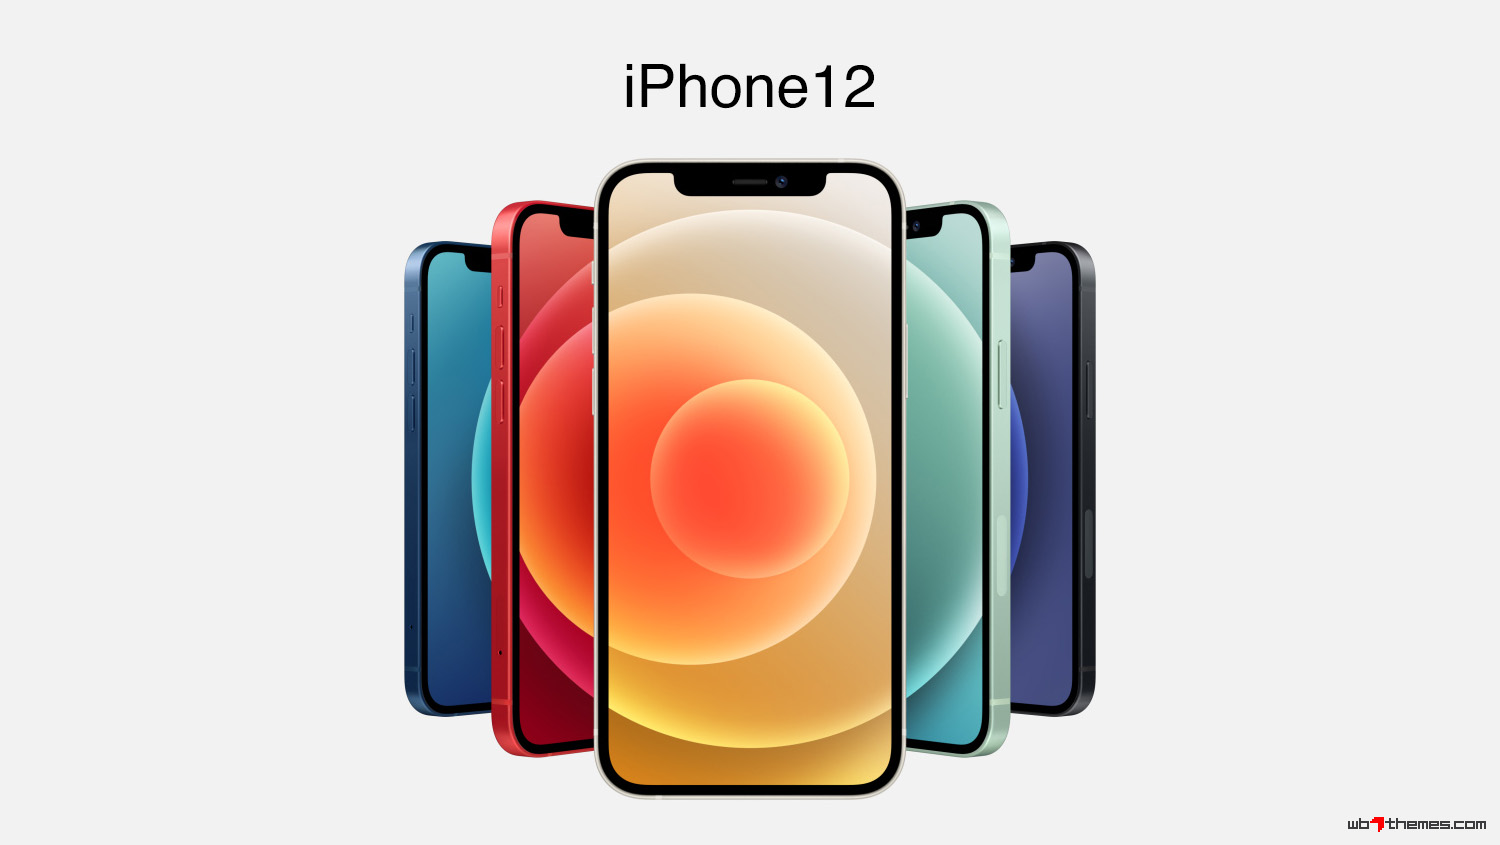 iPhone 12 iOS 14.1 stock wallpaper collection 1356x2934 px